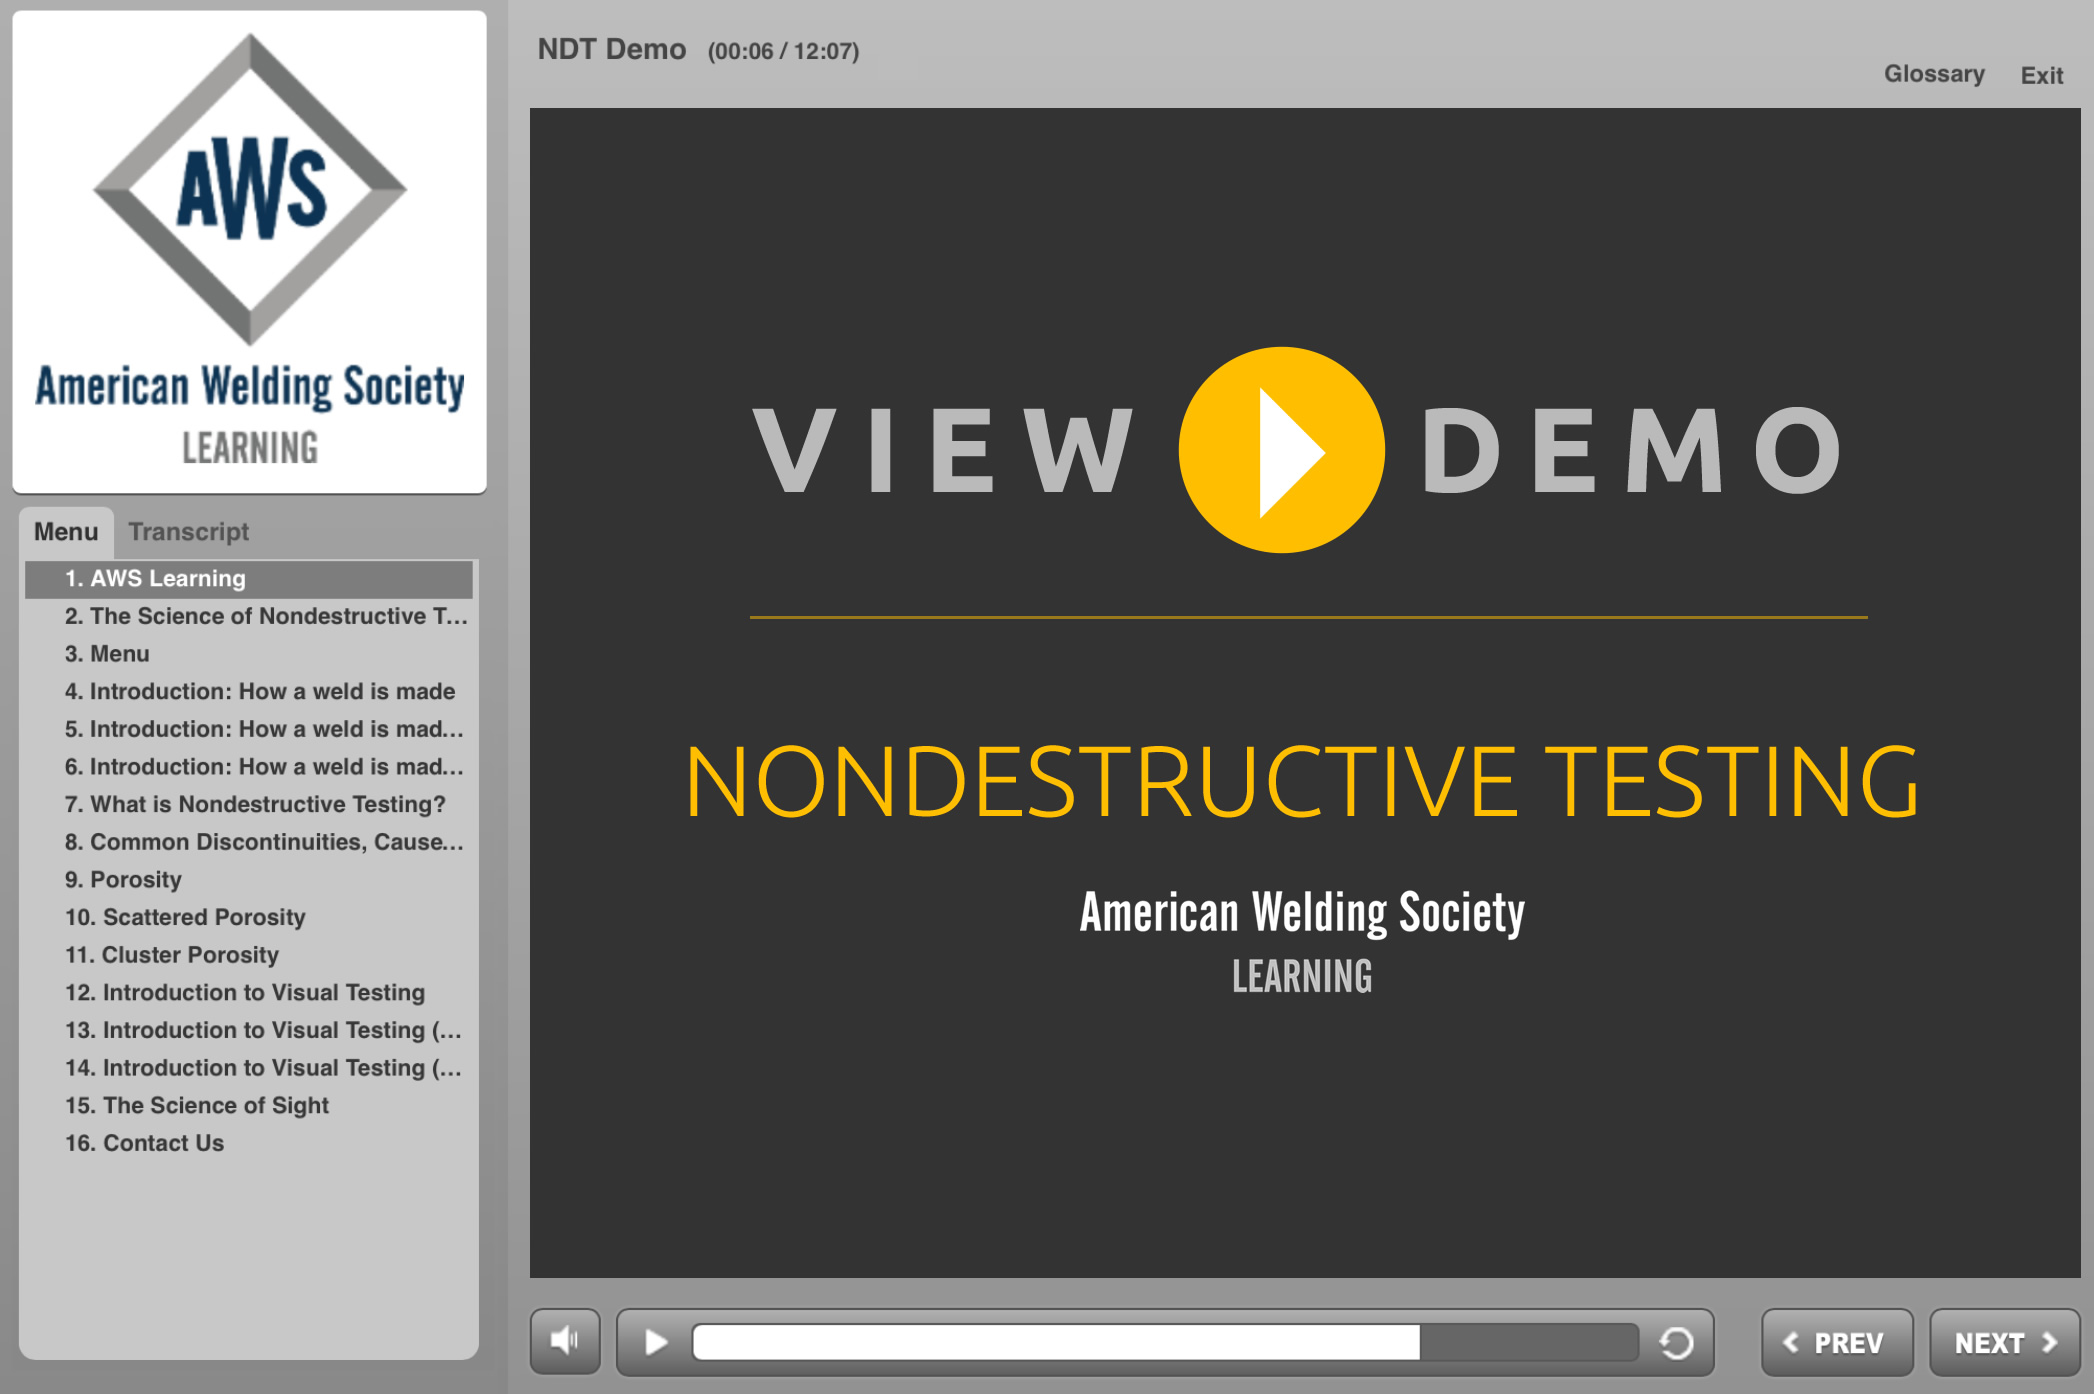 Science of Nondestructive Testing | American Welding Society